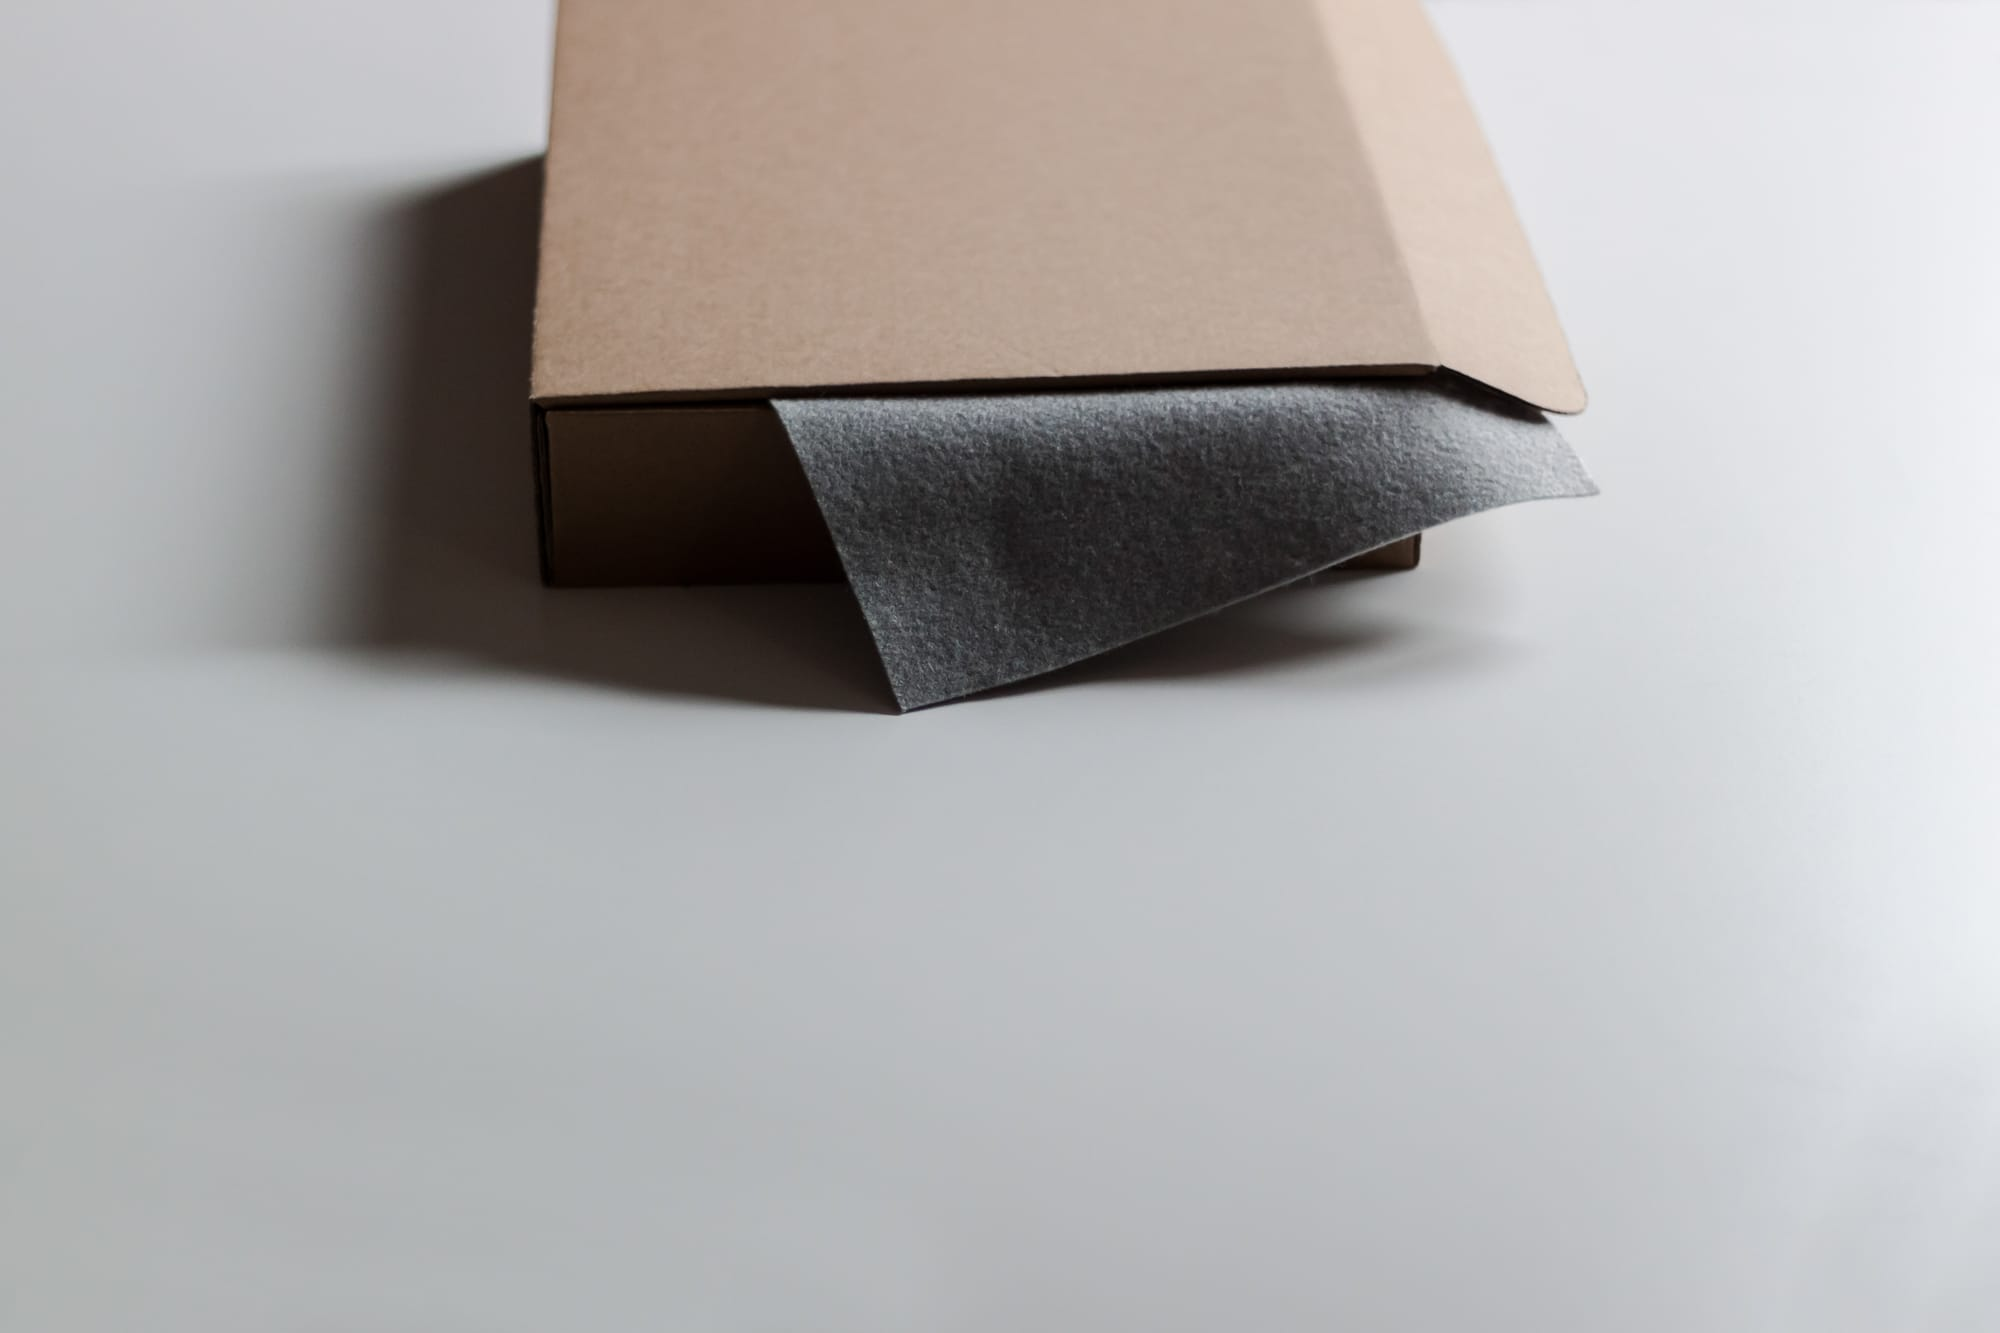 Soft material cover of package for catalogue. borcas brand